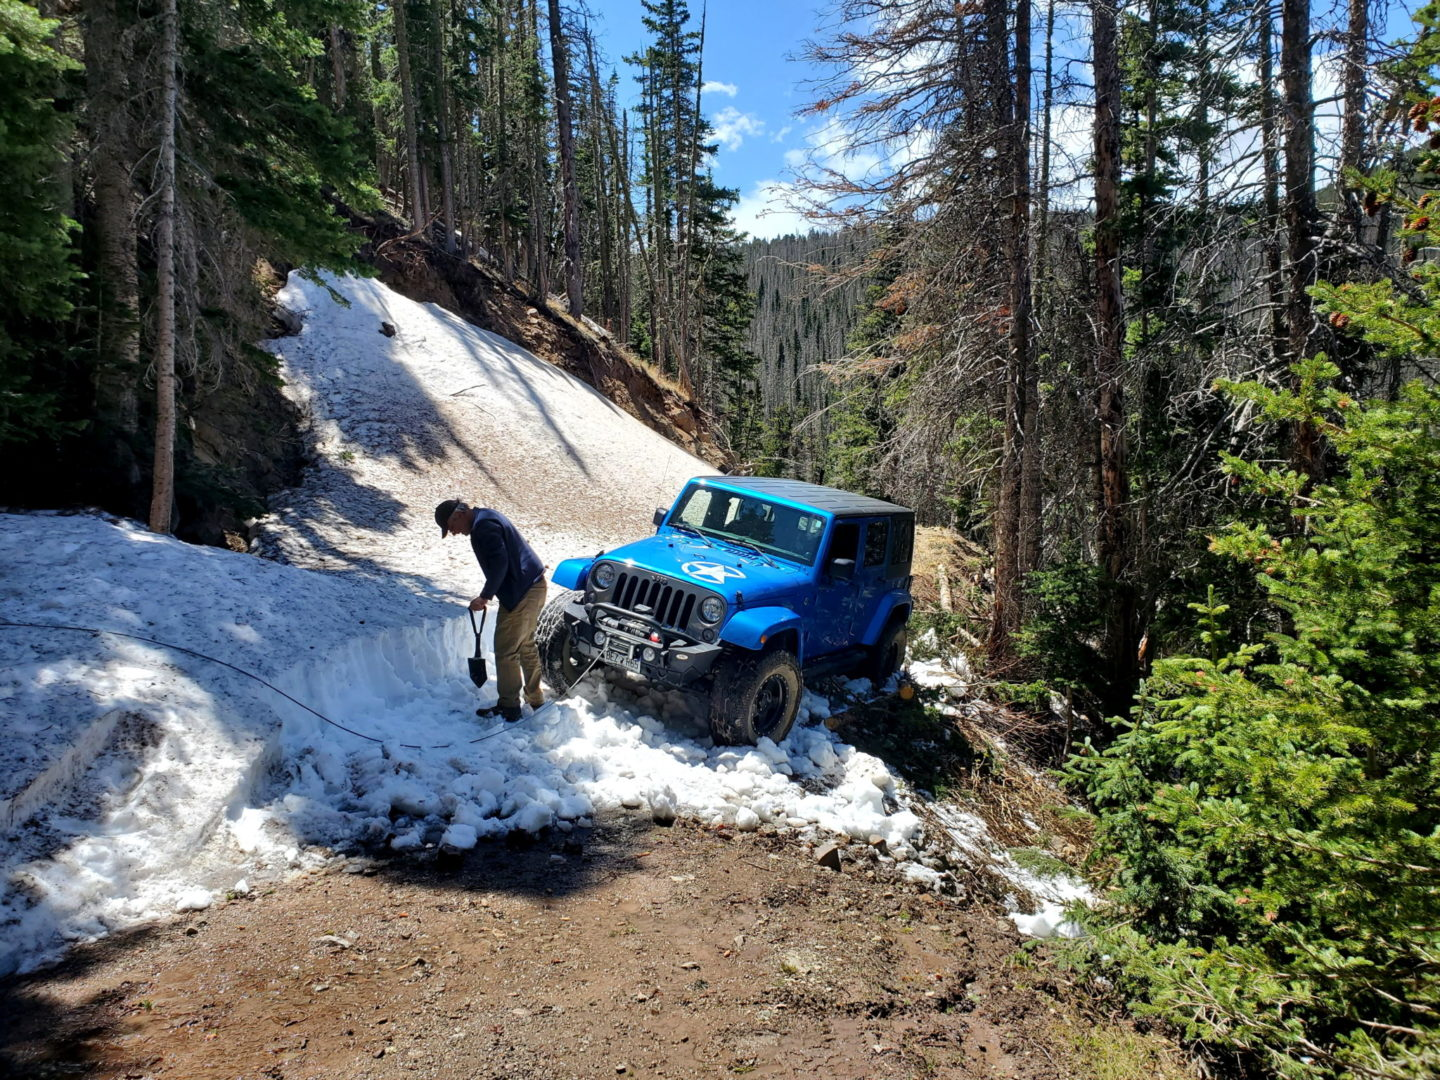 In serious jeopardy of having the driver side back wheel slide into the ravine. Time to winch.